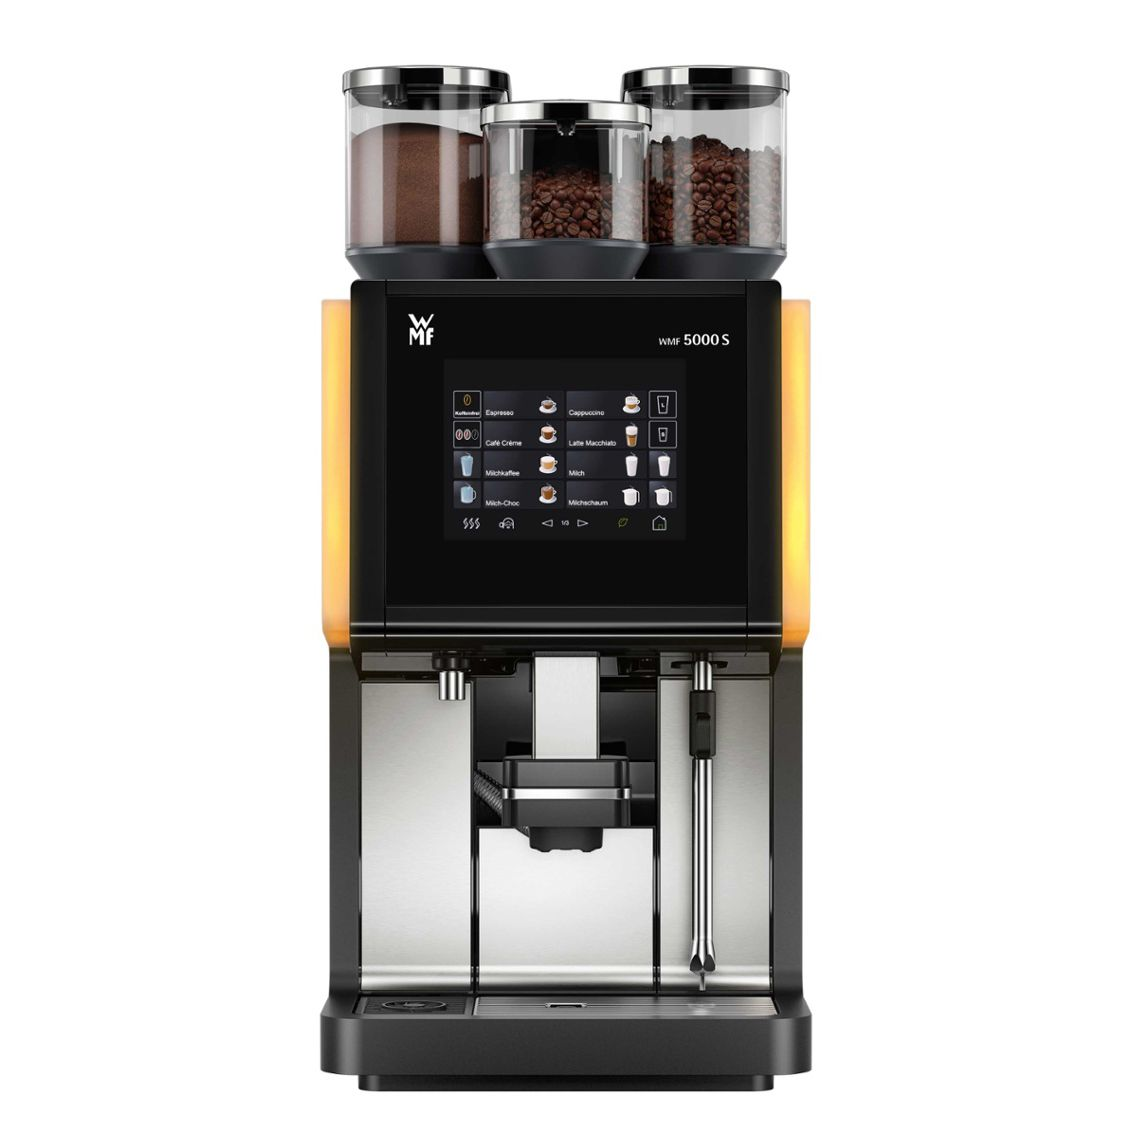 wmf 5000s coffee solutions. Black Bedroom Furniture Sets. Home Design Ideas